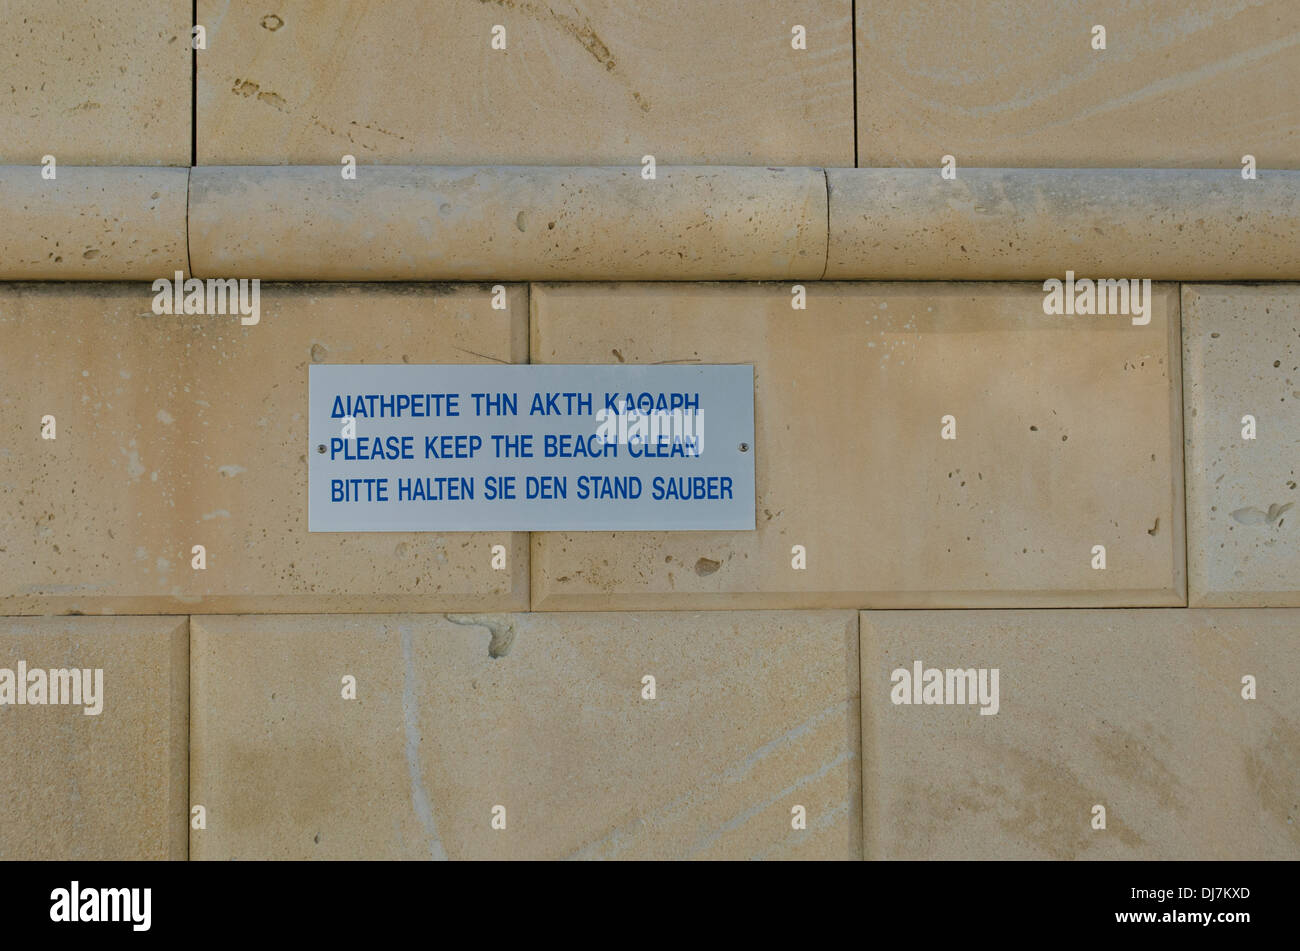 Please Keep The Beach Clean Sign on Wall Stock Photo